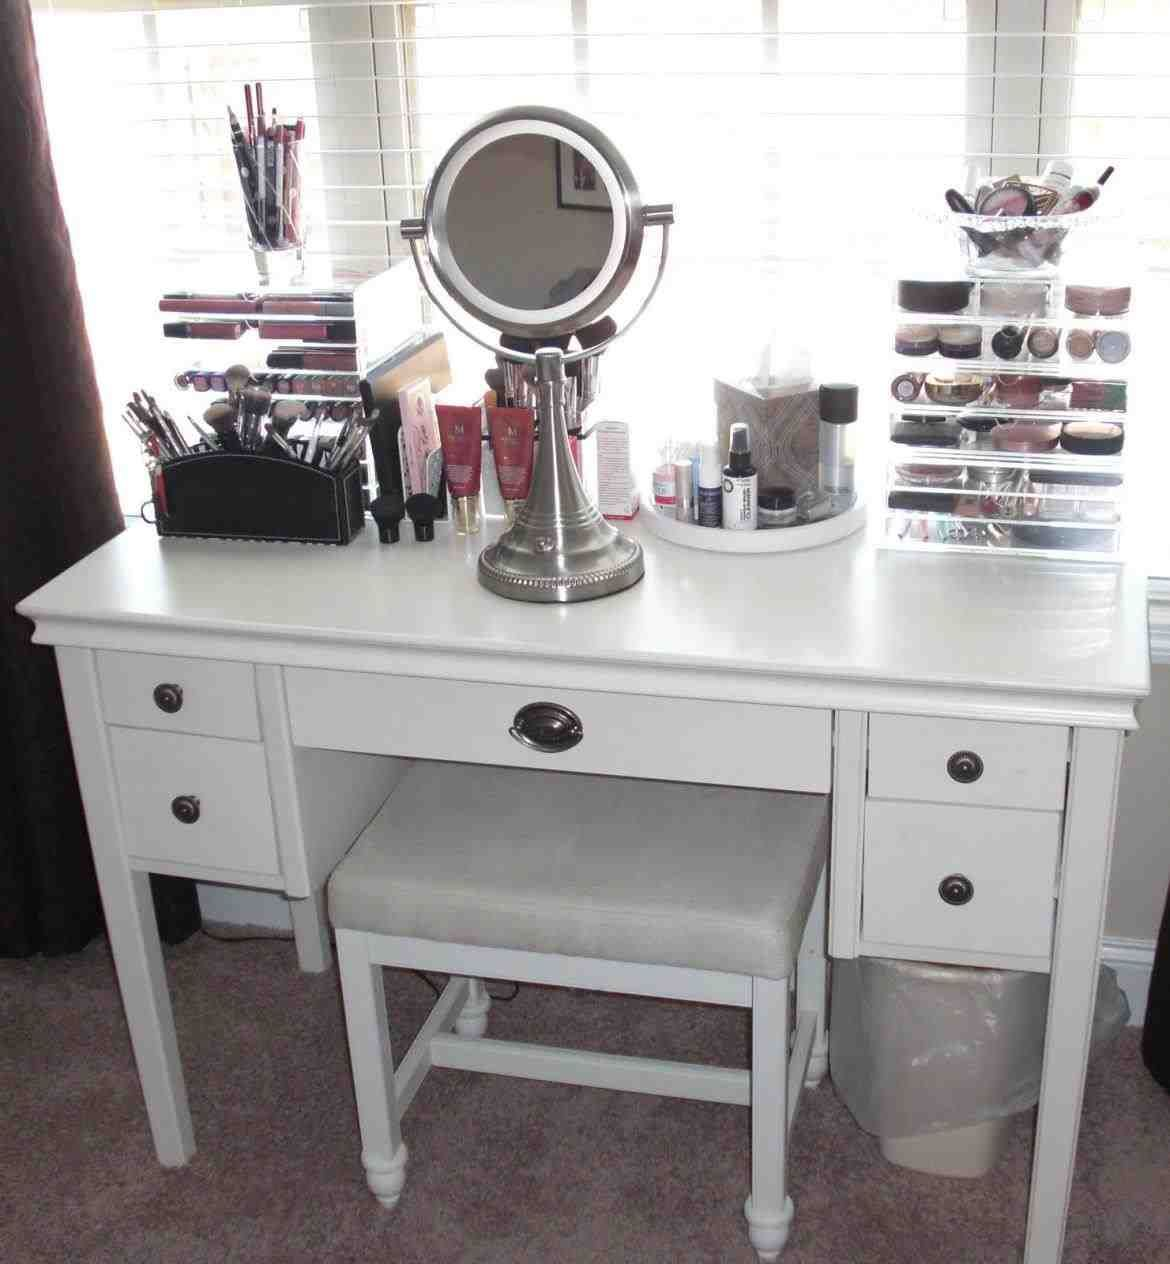 This Vanity Table Organization Ideas Pier 1 Imports Hayworth